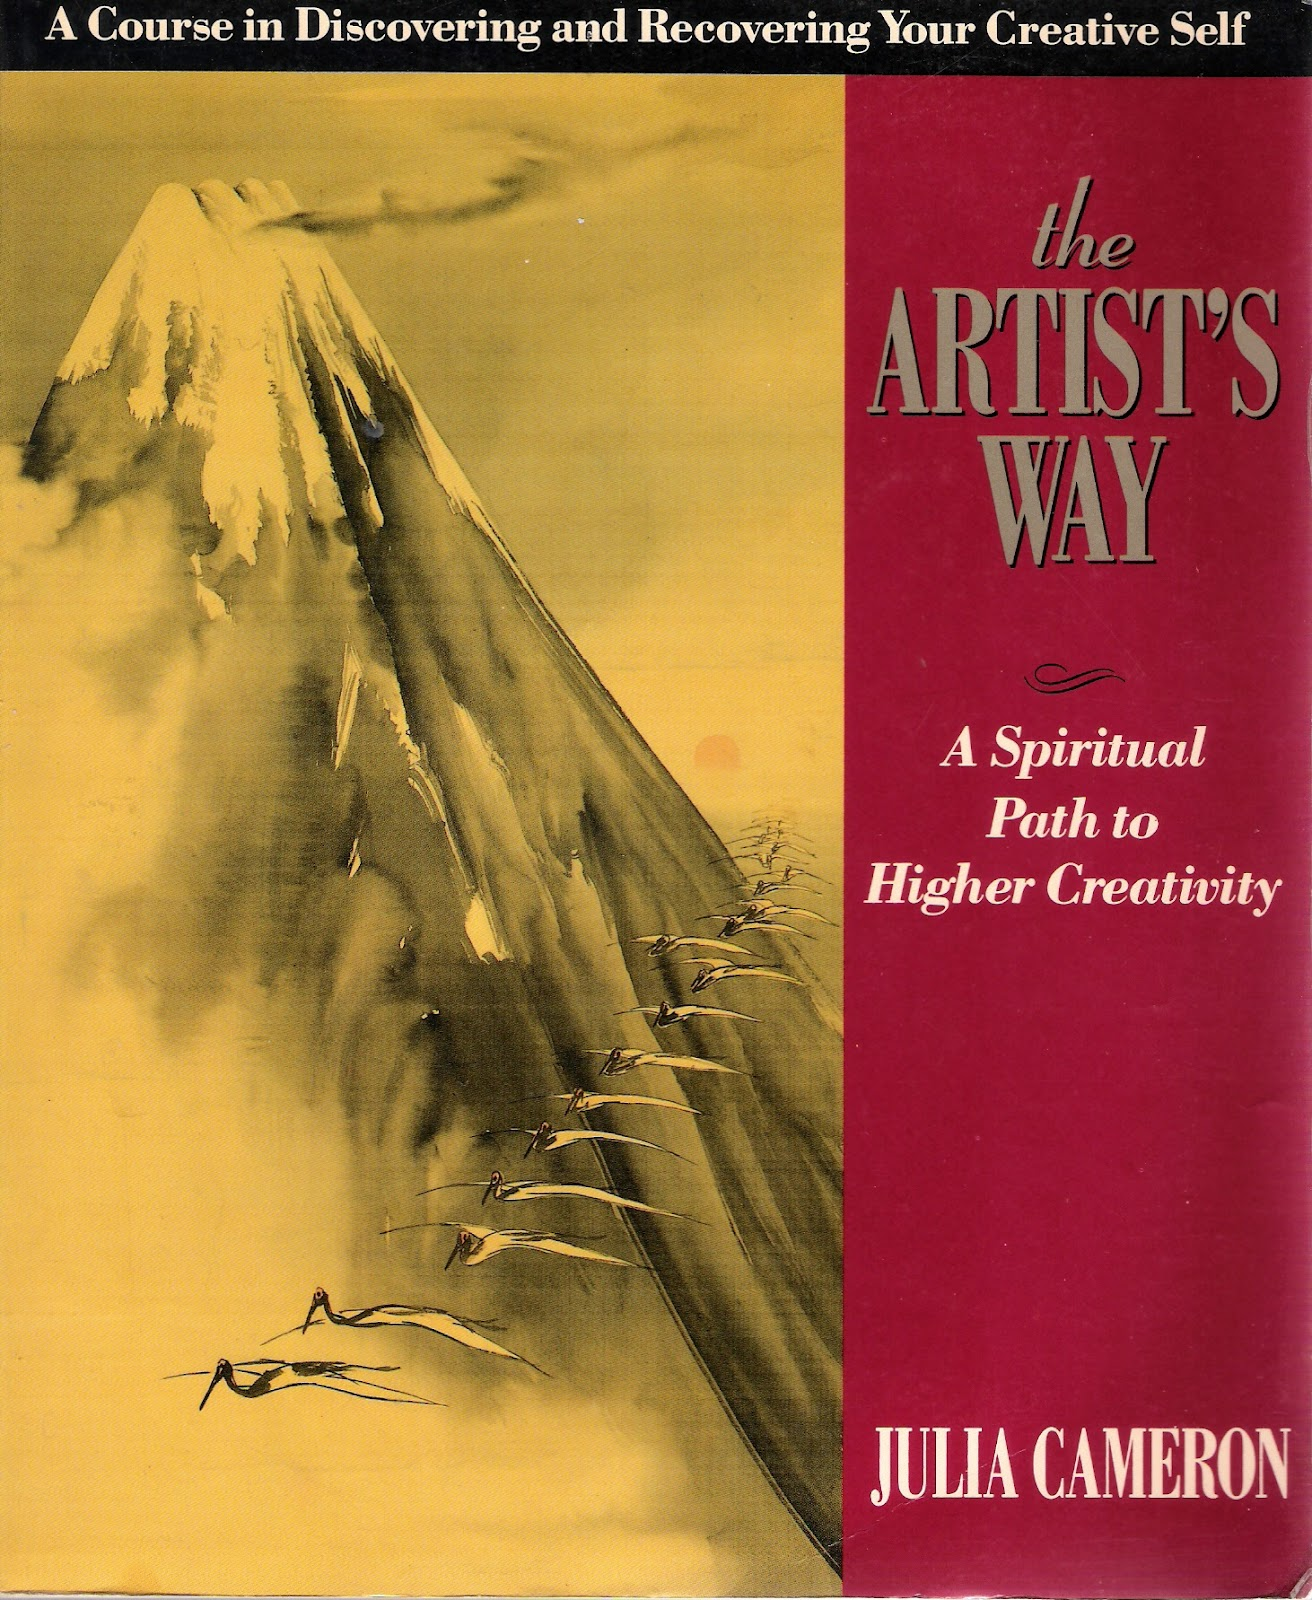 The Artist's Way - Julia Cameron - This book is a catalyst in teaching about well-being and trusting the creative process.